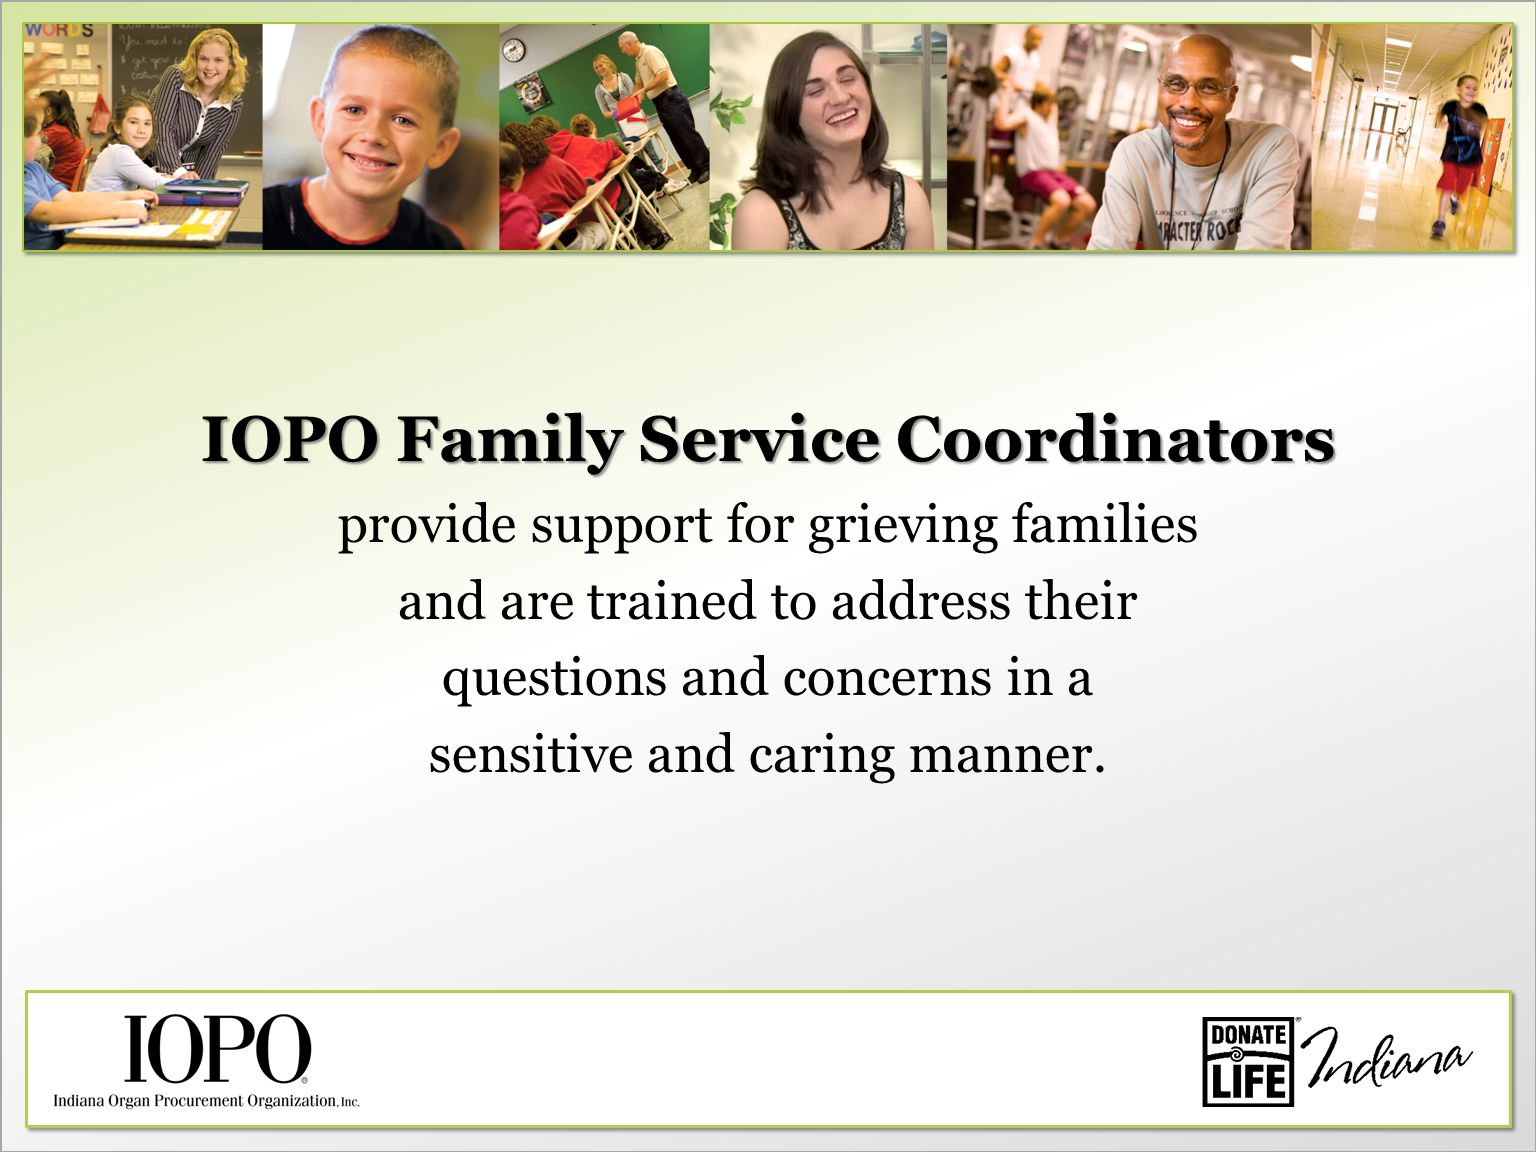 IOPO Family Service Coordinators provide support for grieving families and are trained to address their questions and concerns in a sensitive and caring manner.